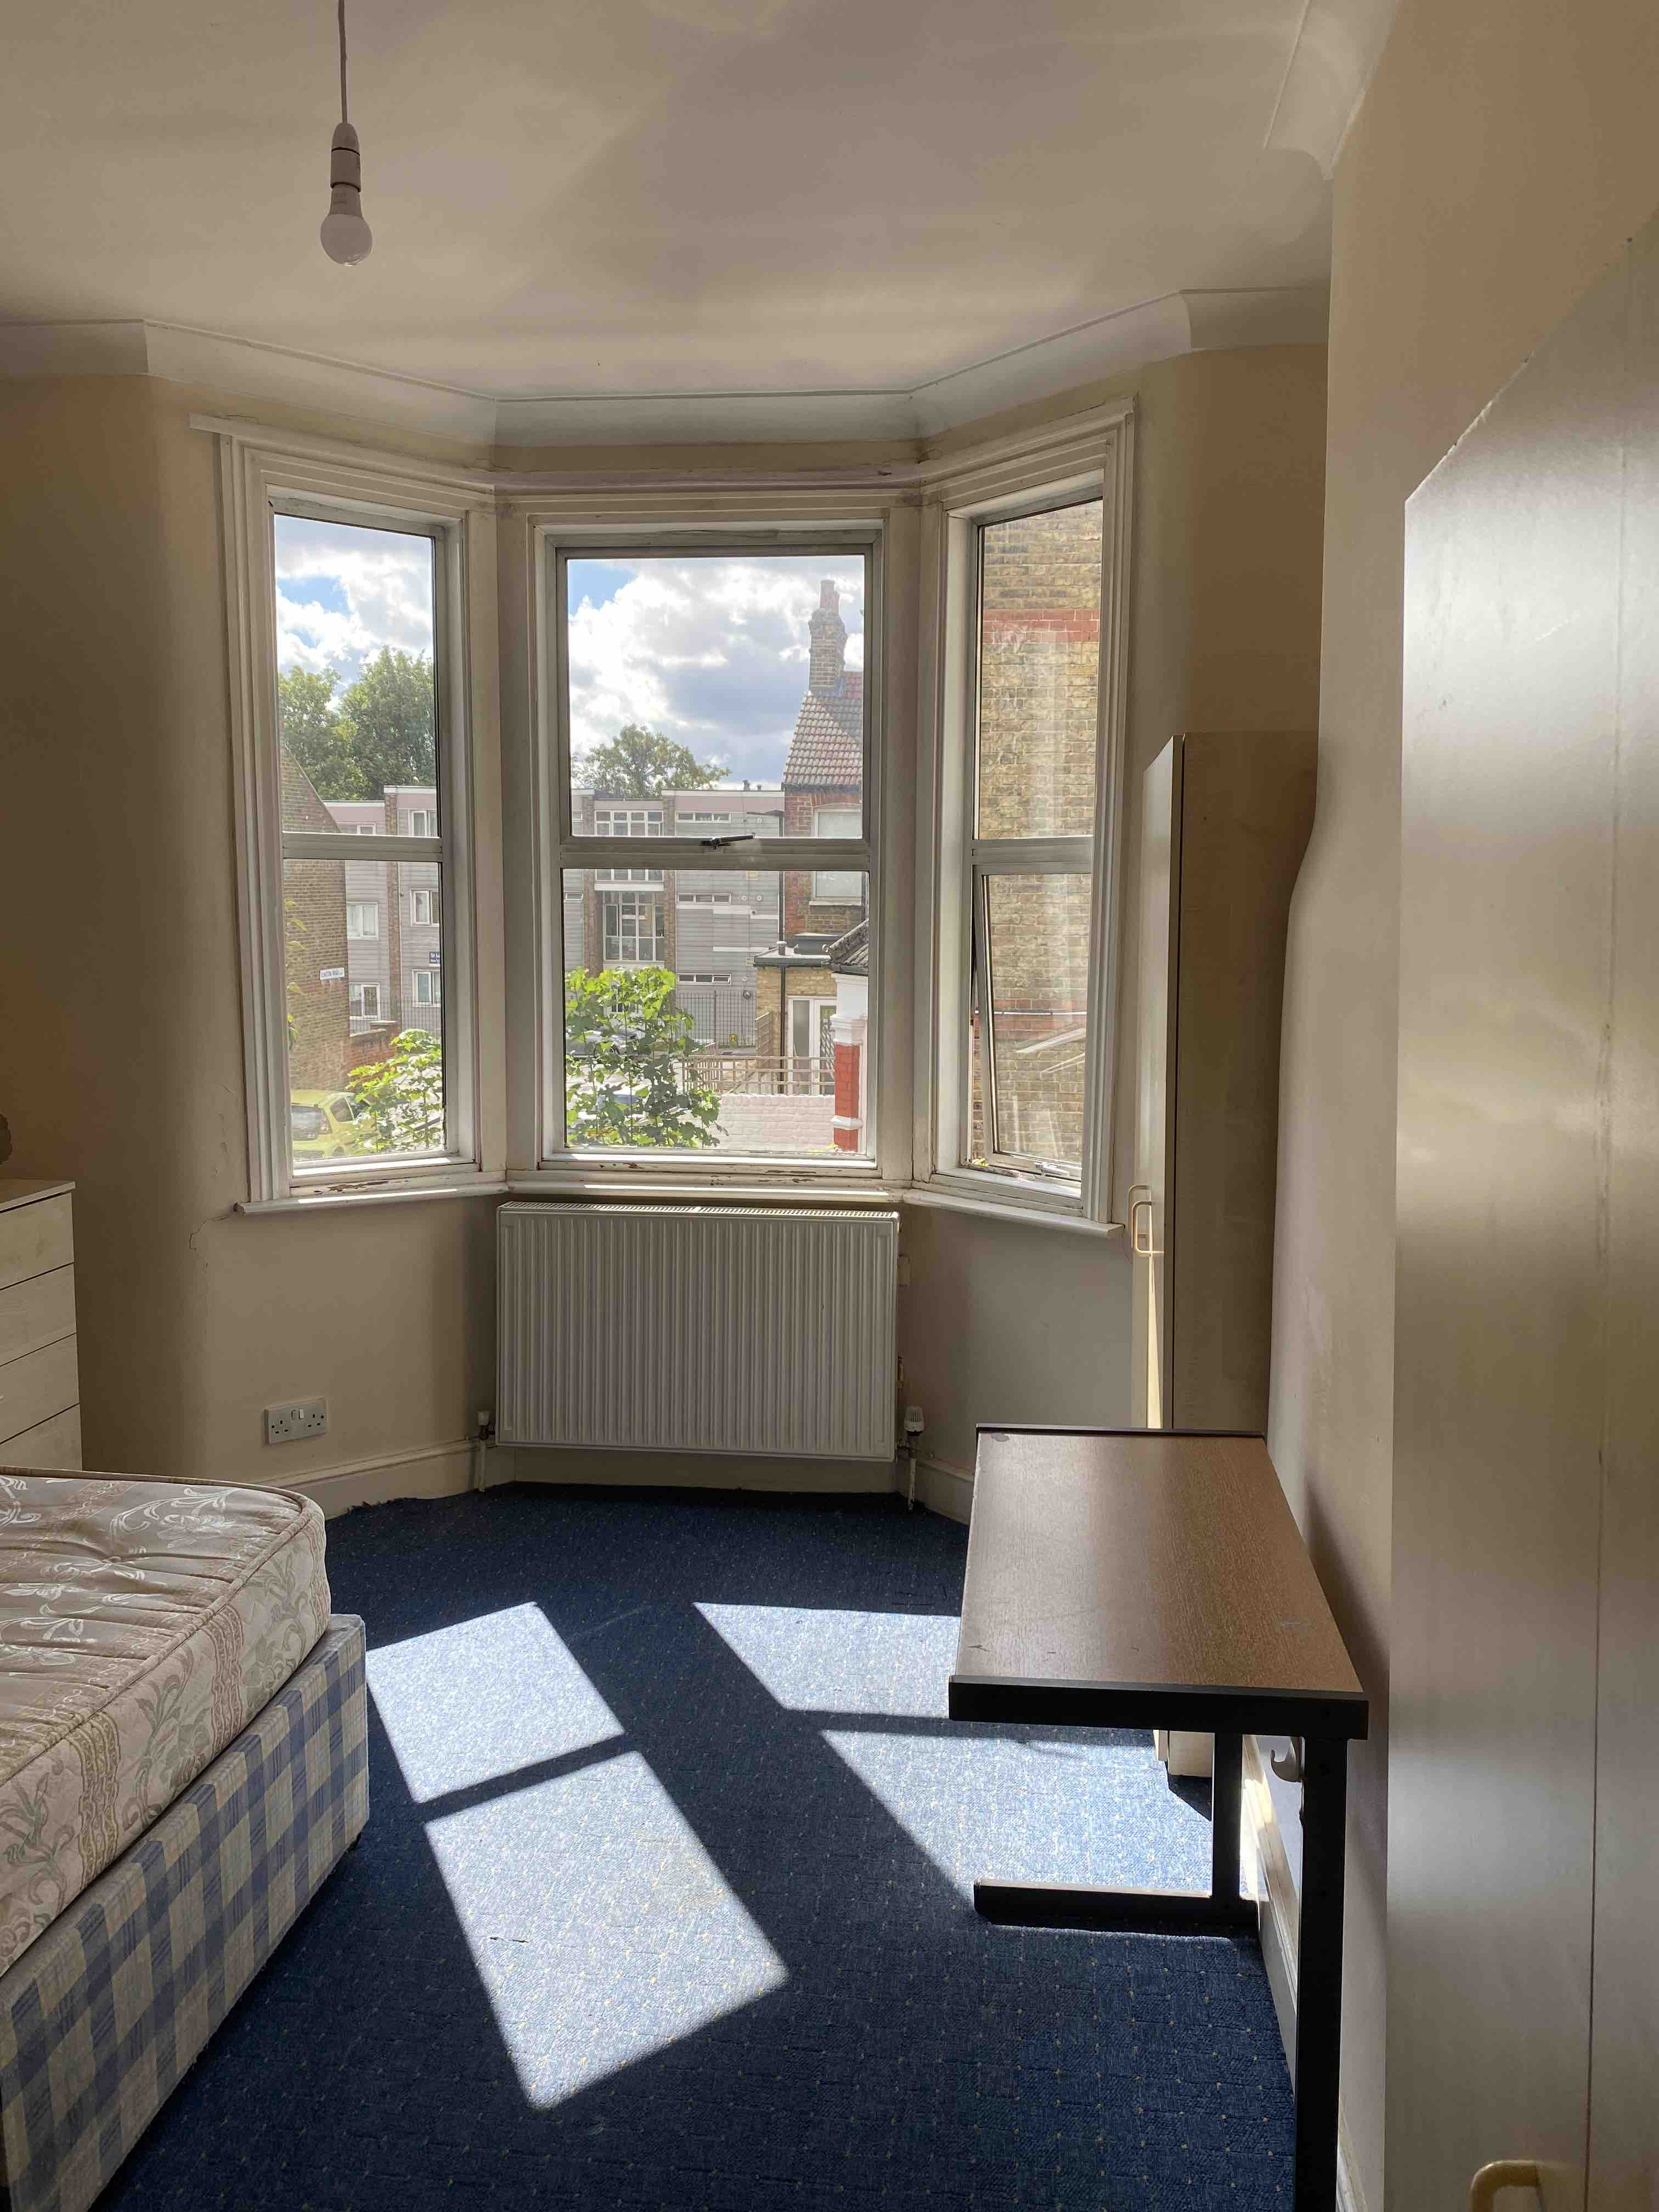 1 room in Bruce Grove, London, N17 6UJ RoomsLocal image